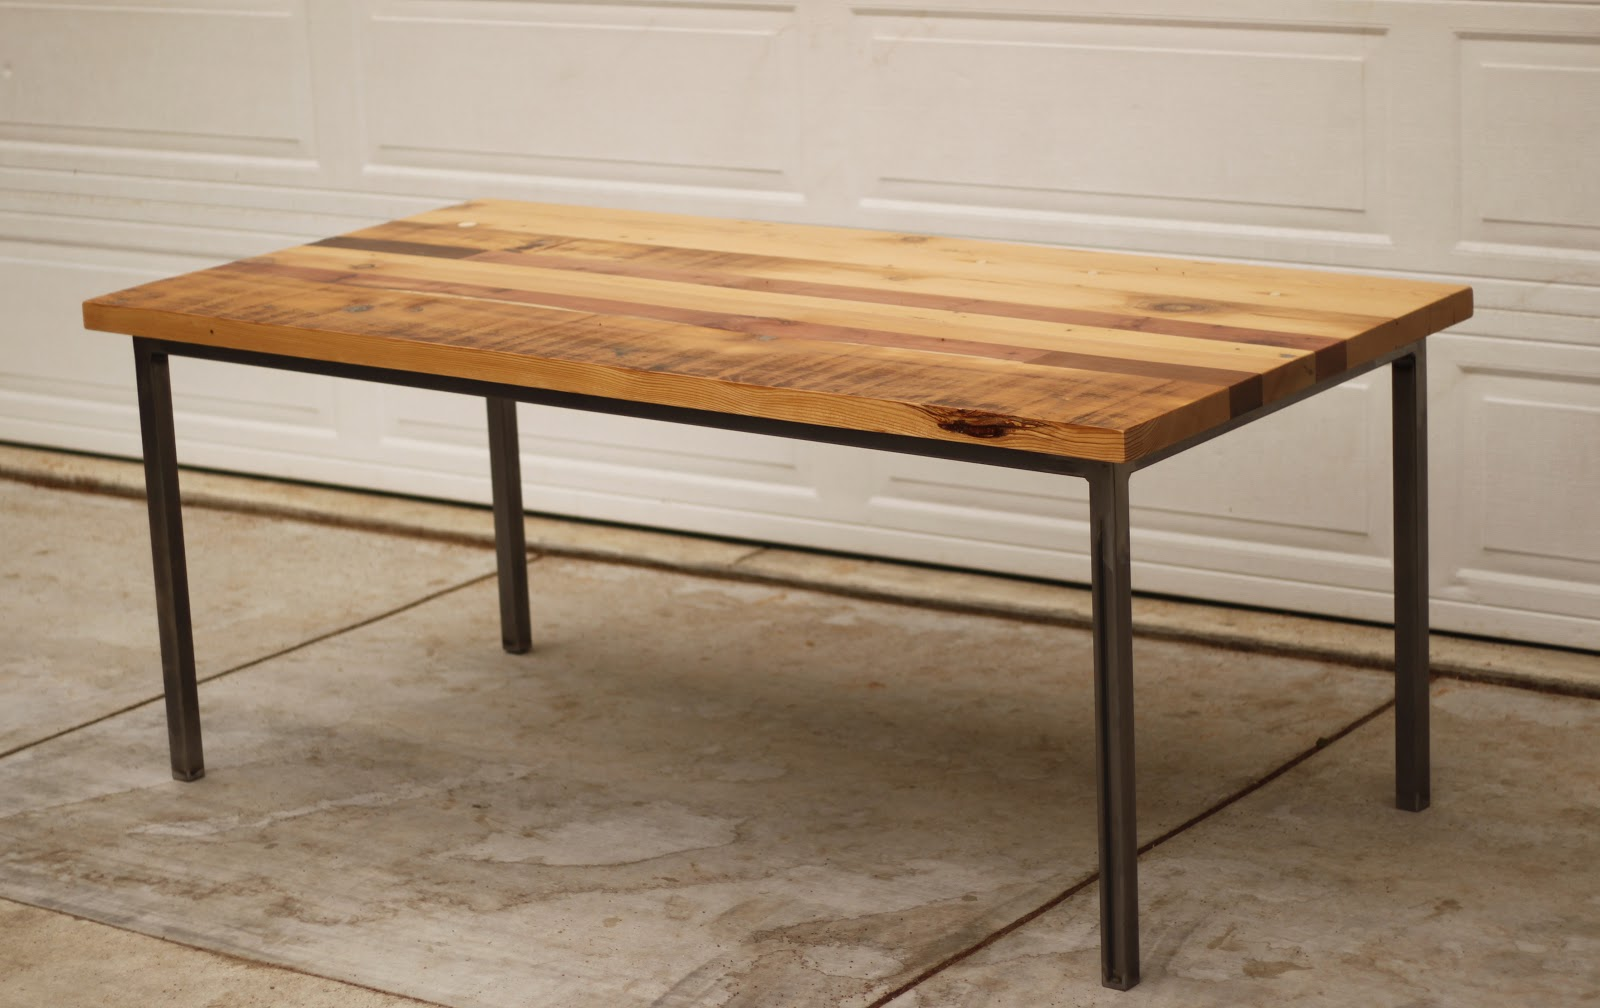 Arbor Exchange | Reclaimed Wood Furniture: Patchwork Table w